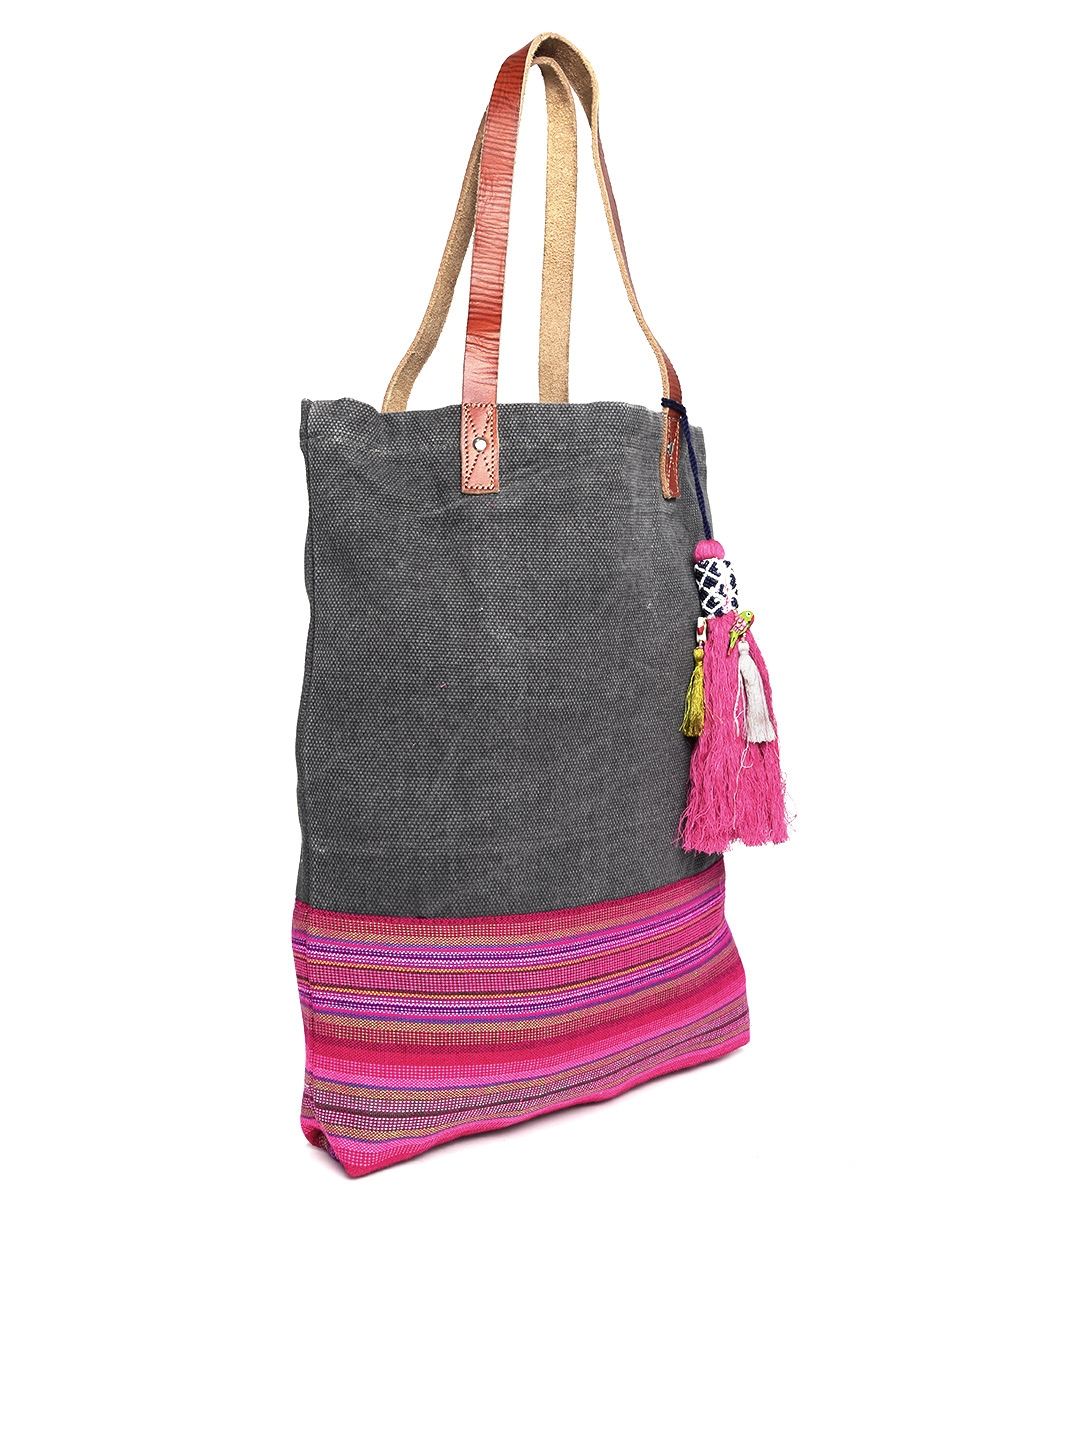 Our chic and affordable selection of women's bags and totes help you make a statement with your style. Whether it's trendy, chic or boho, you can explore global trends in our eclectic assortment of women's accessories to find unique accessories that breathe life into your wardrobe.